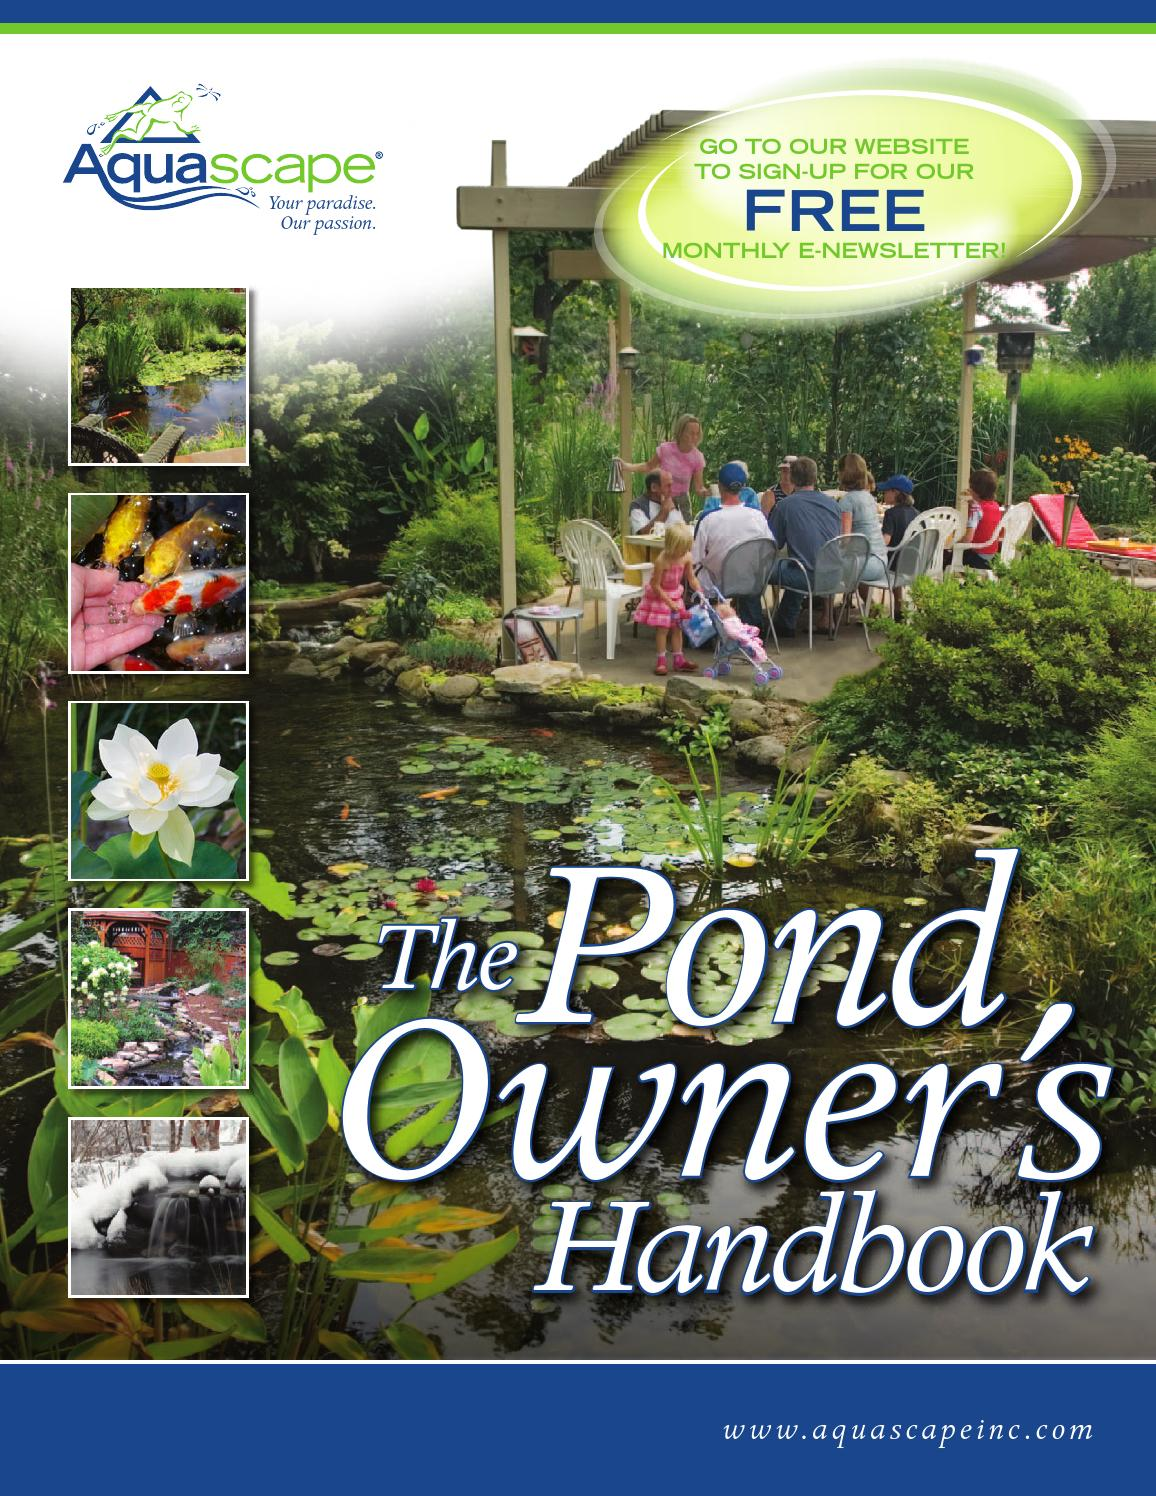 The Pond Owner's Handbook